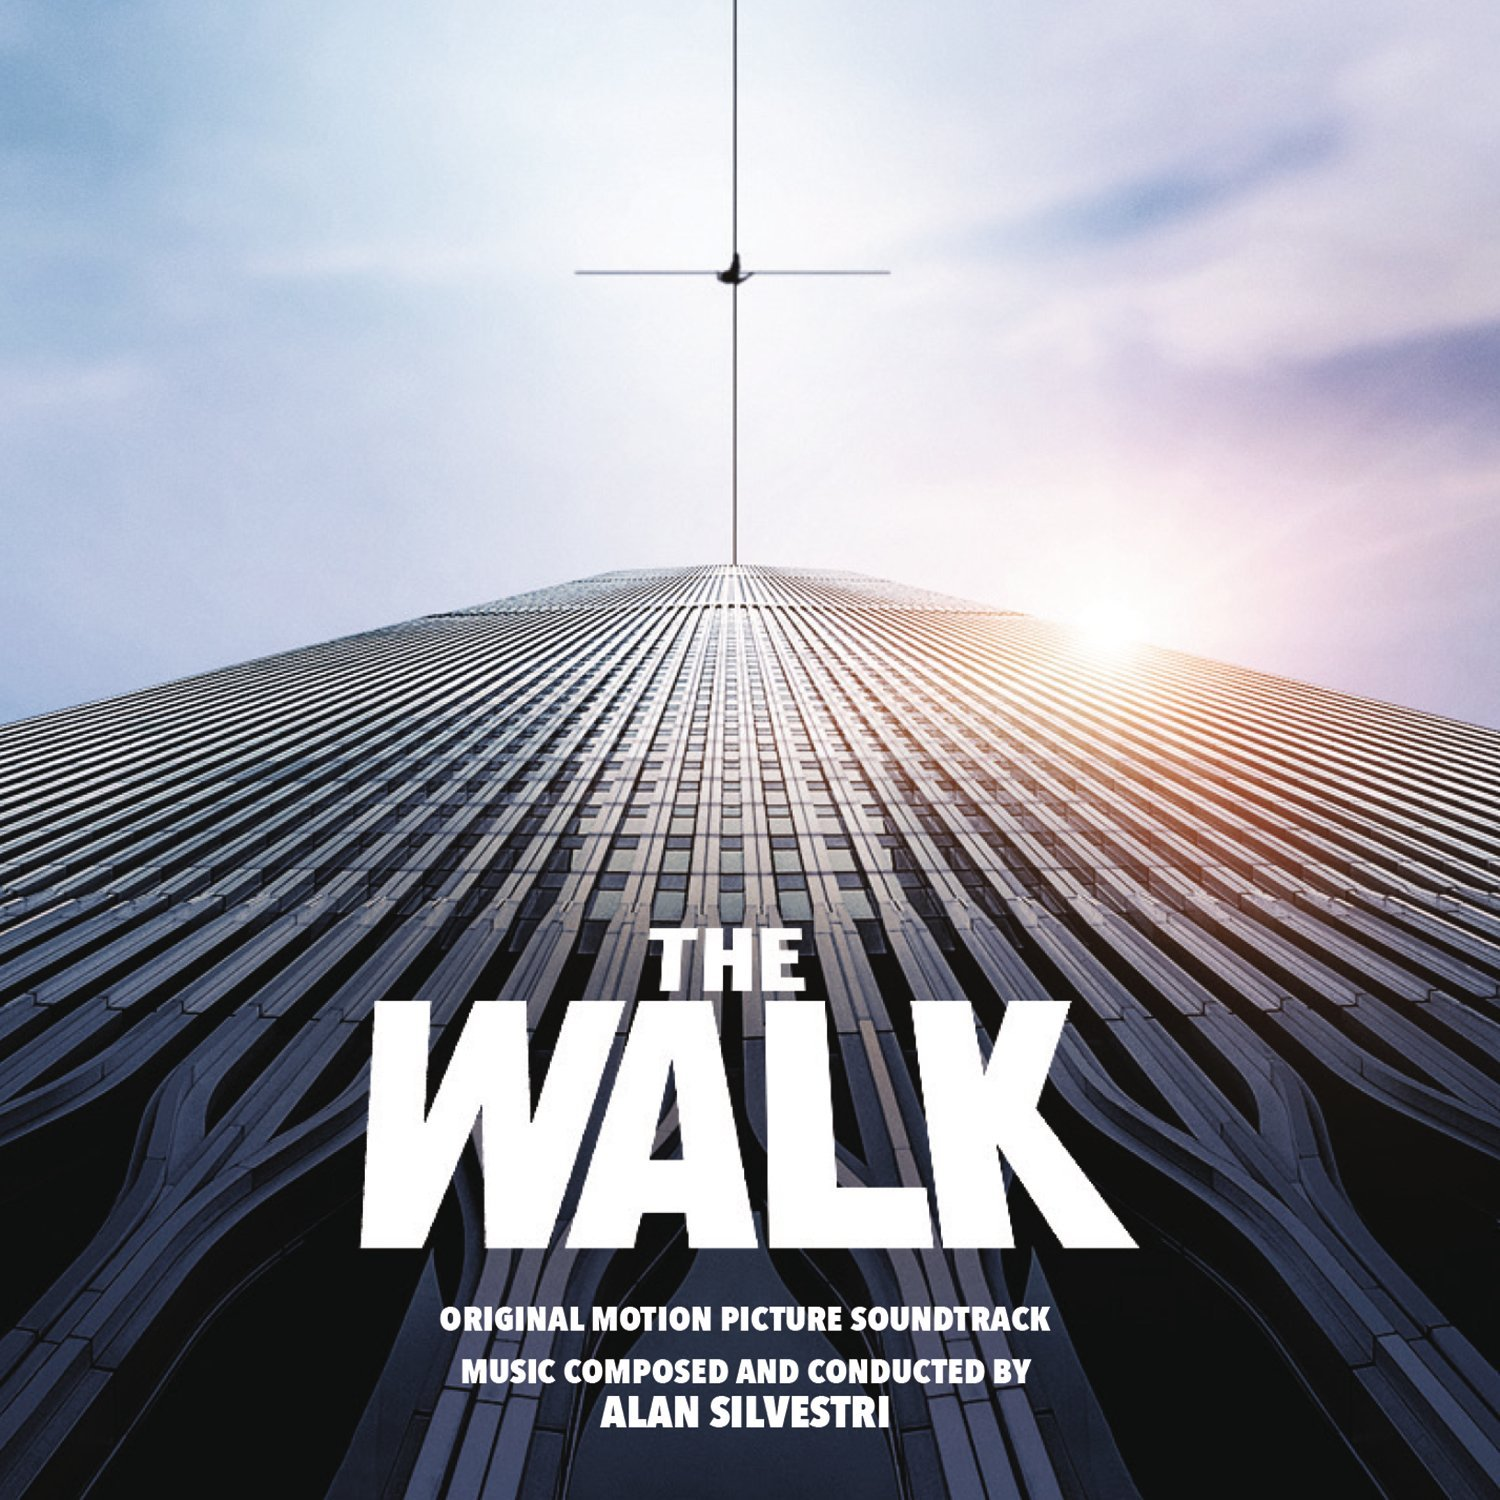 Story besides The Walk Soundtrack Alan Silvestri together with Top 10 Best Portrayals Of Real People In Movies likewise Oskar Schindler also Kazimierz01. on oscar schindler real story